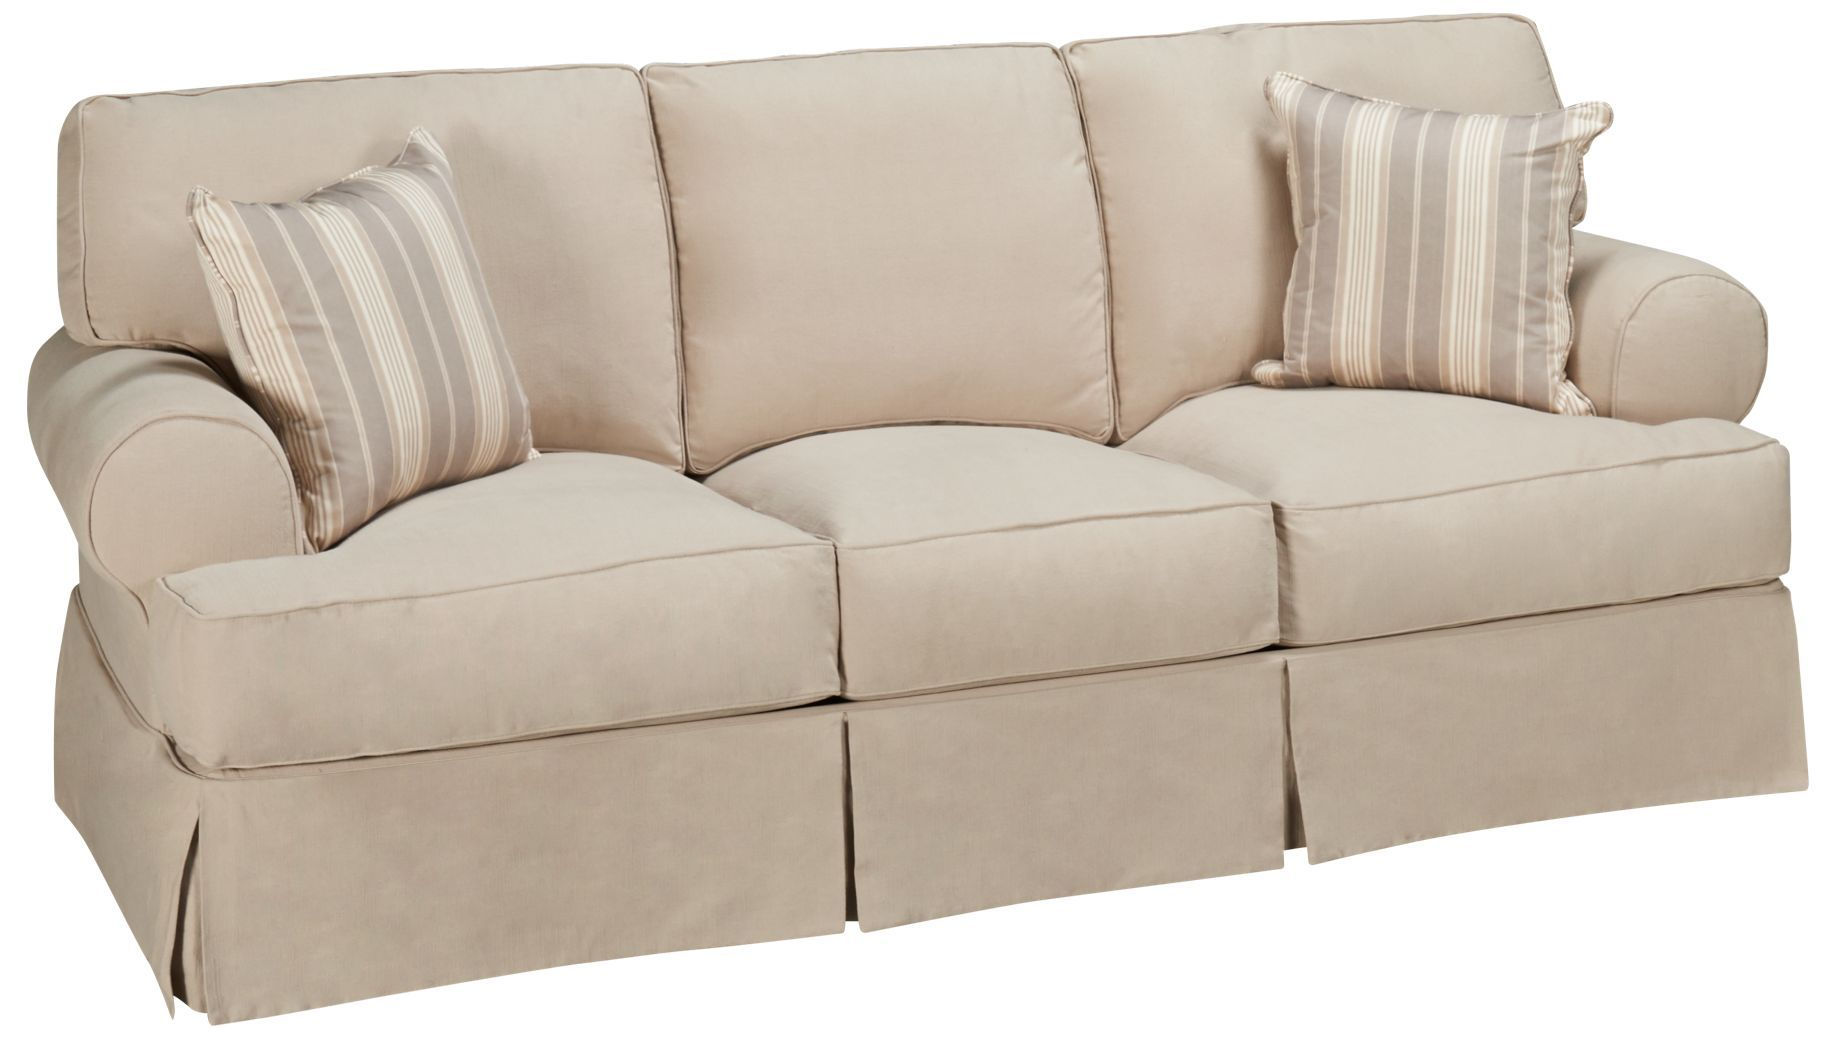 Synergy Home FurnishingsMontagueMontague Sofa with